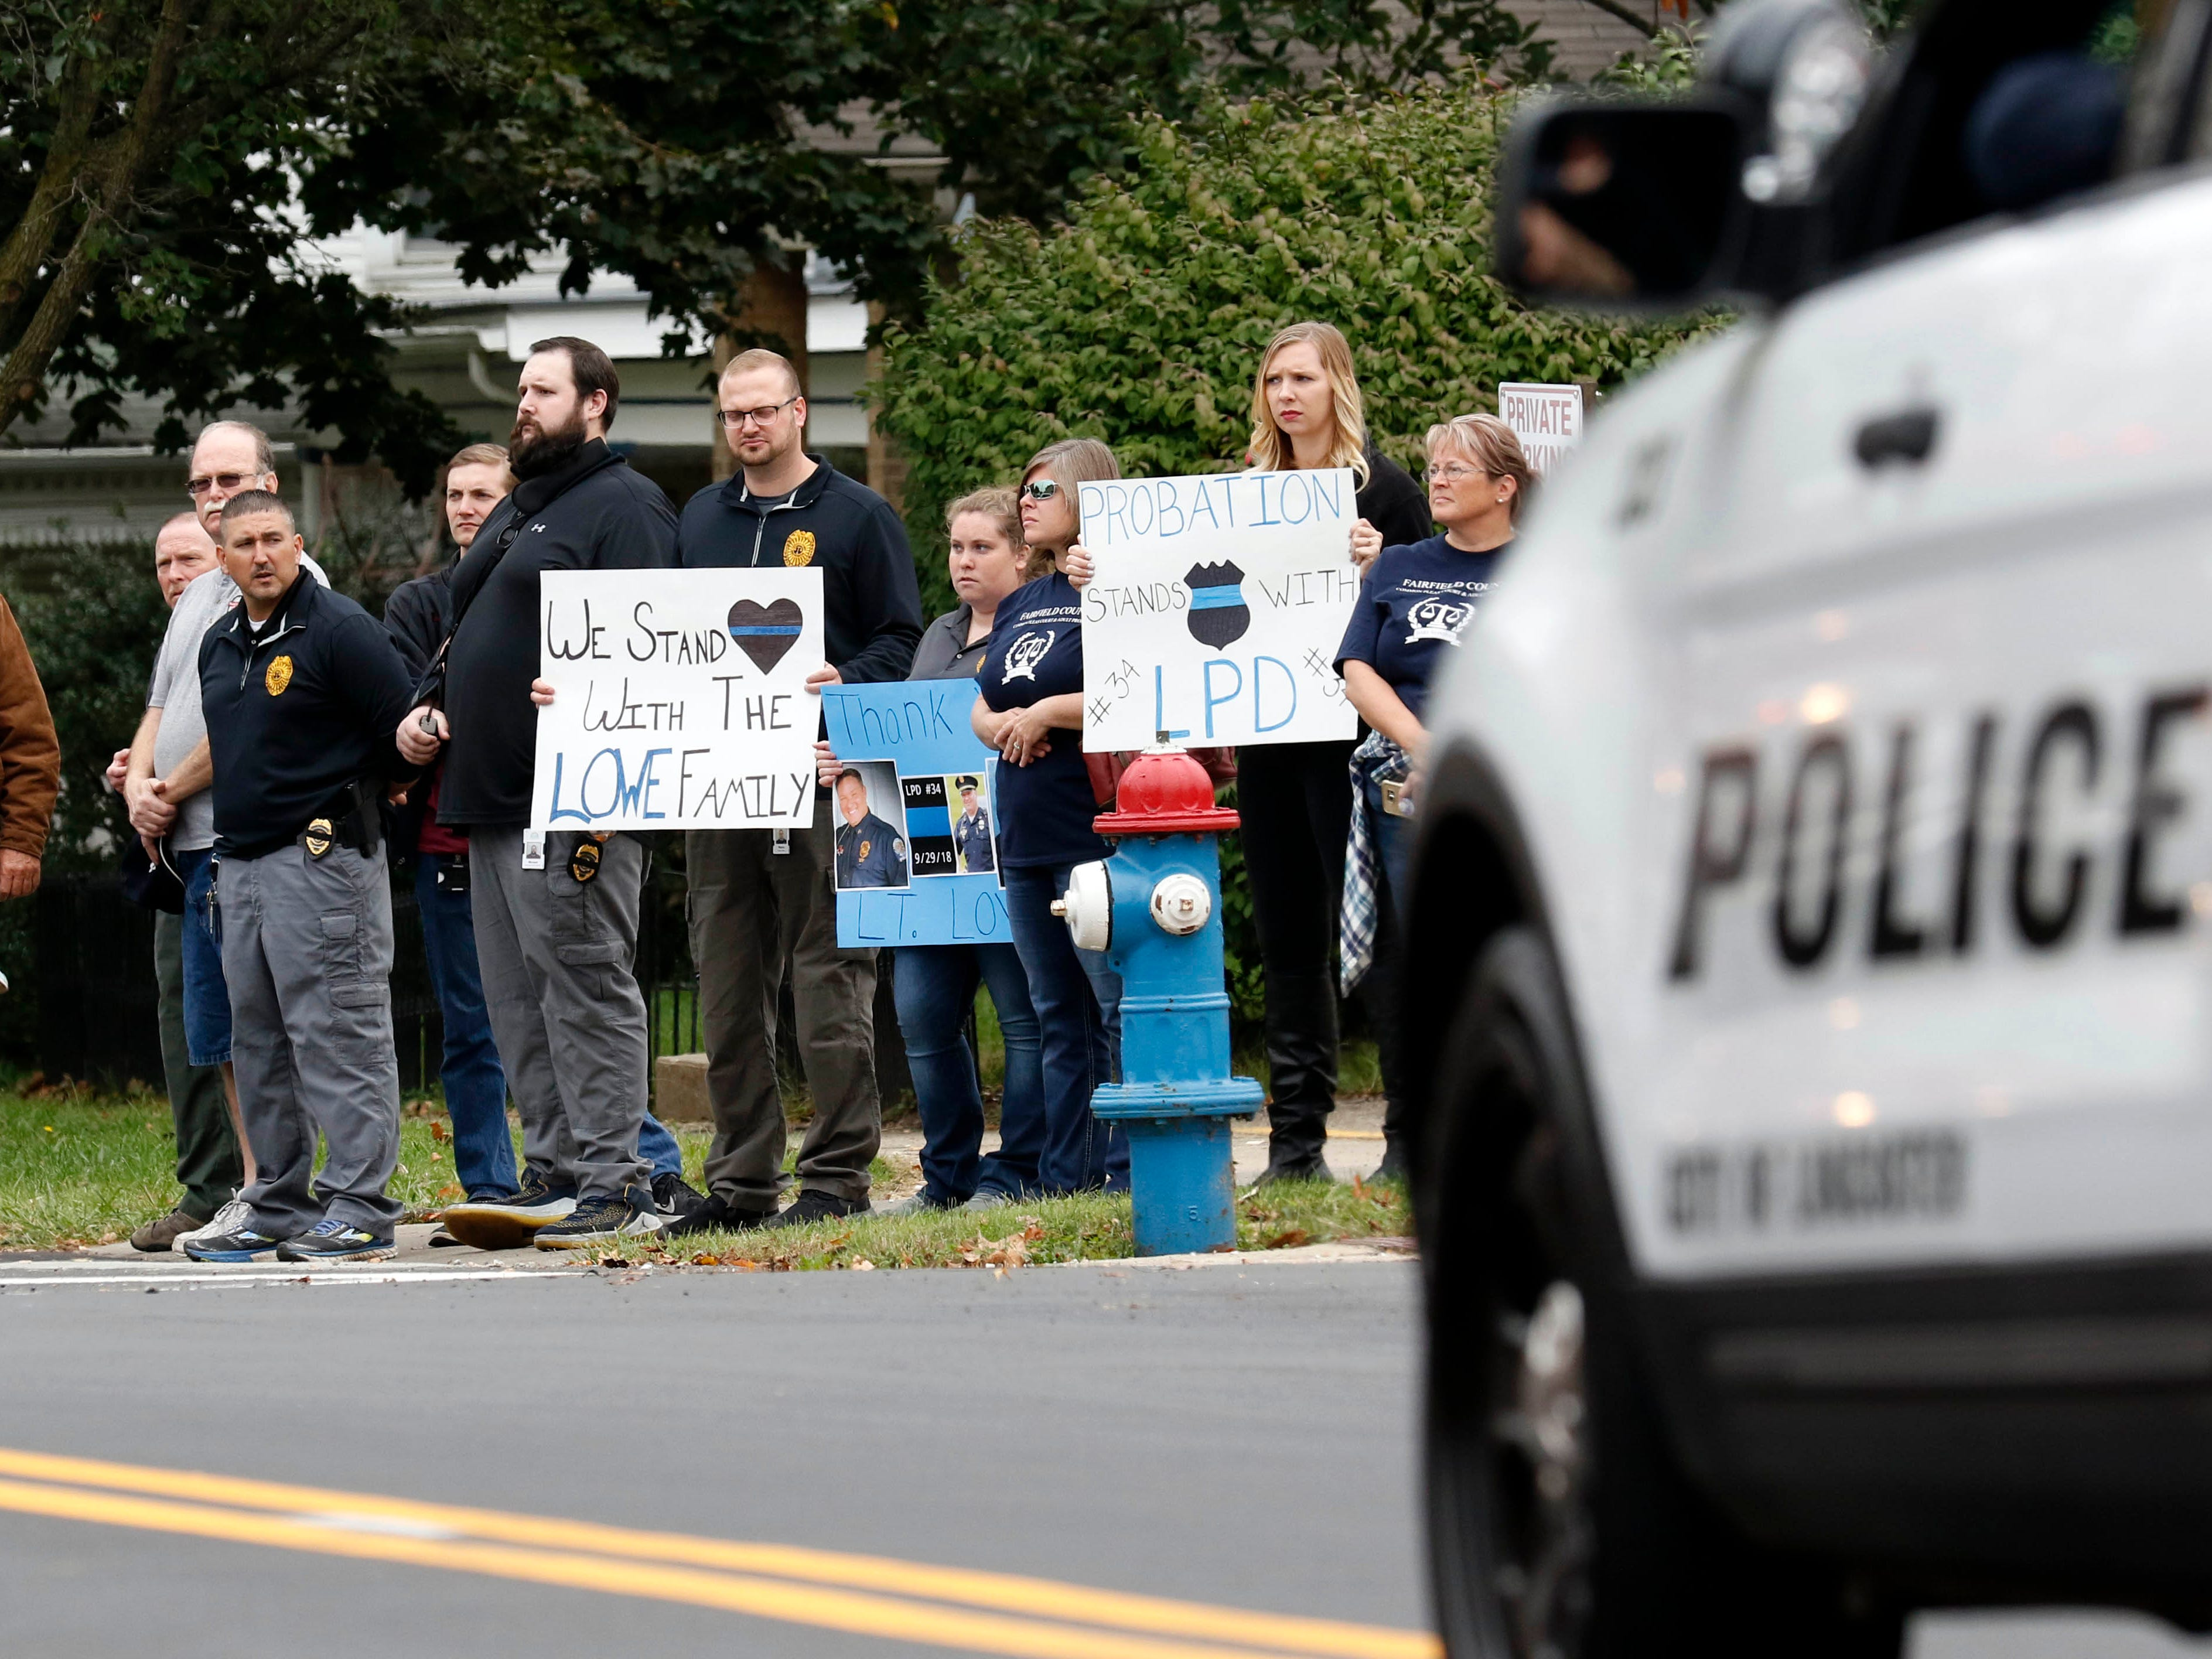 Members of the Fairfield County Common Please Court Adult Community Control Department stand along Chestnut Street as a funeral procession of more than 100 vehicles drive through the streets of Lancaster Friday, Oct. 5, 2018. The procession was for Lancaster Police Lt. Brian Lowe, who died unexpectedly September 29 while off duty.